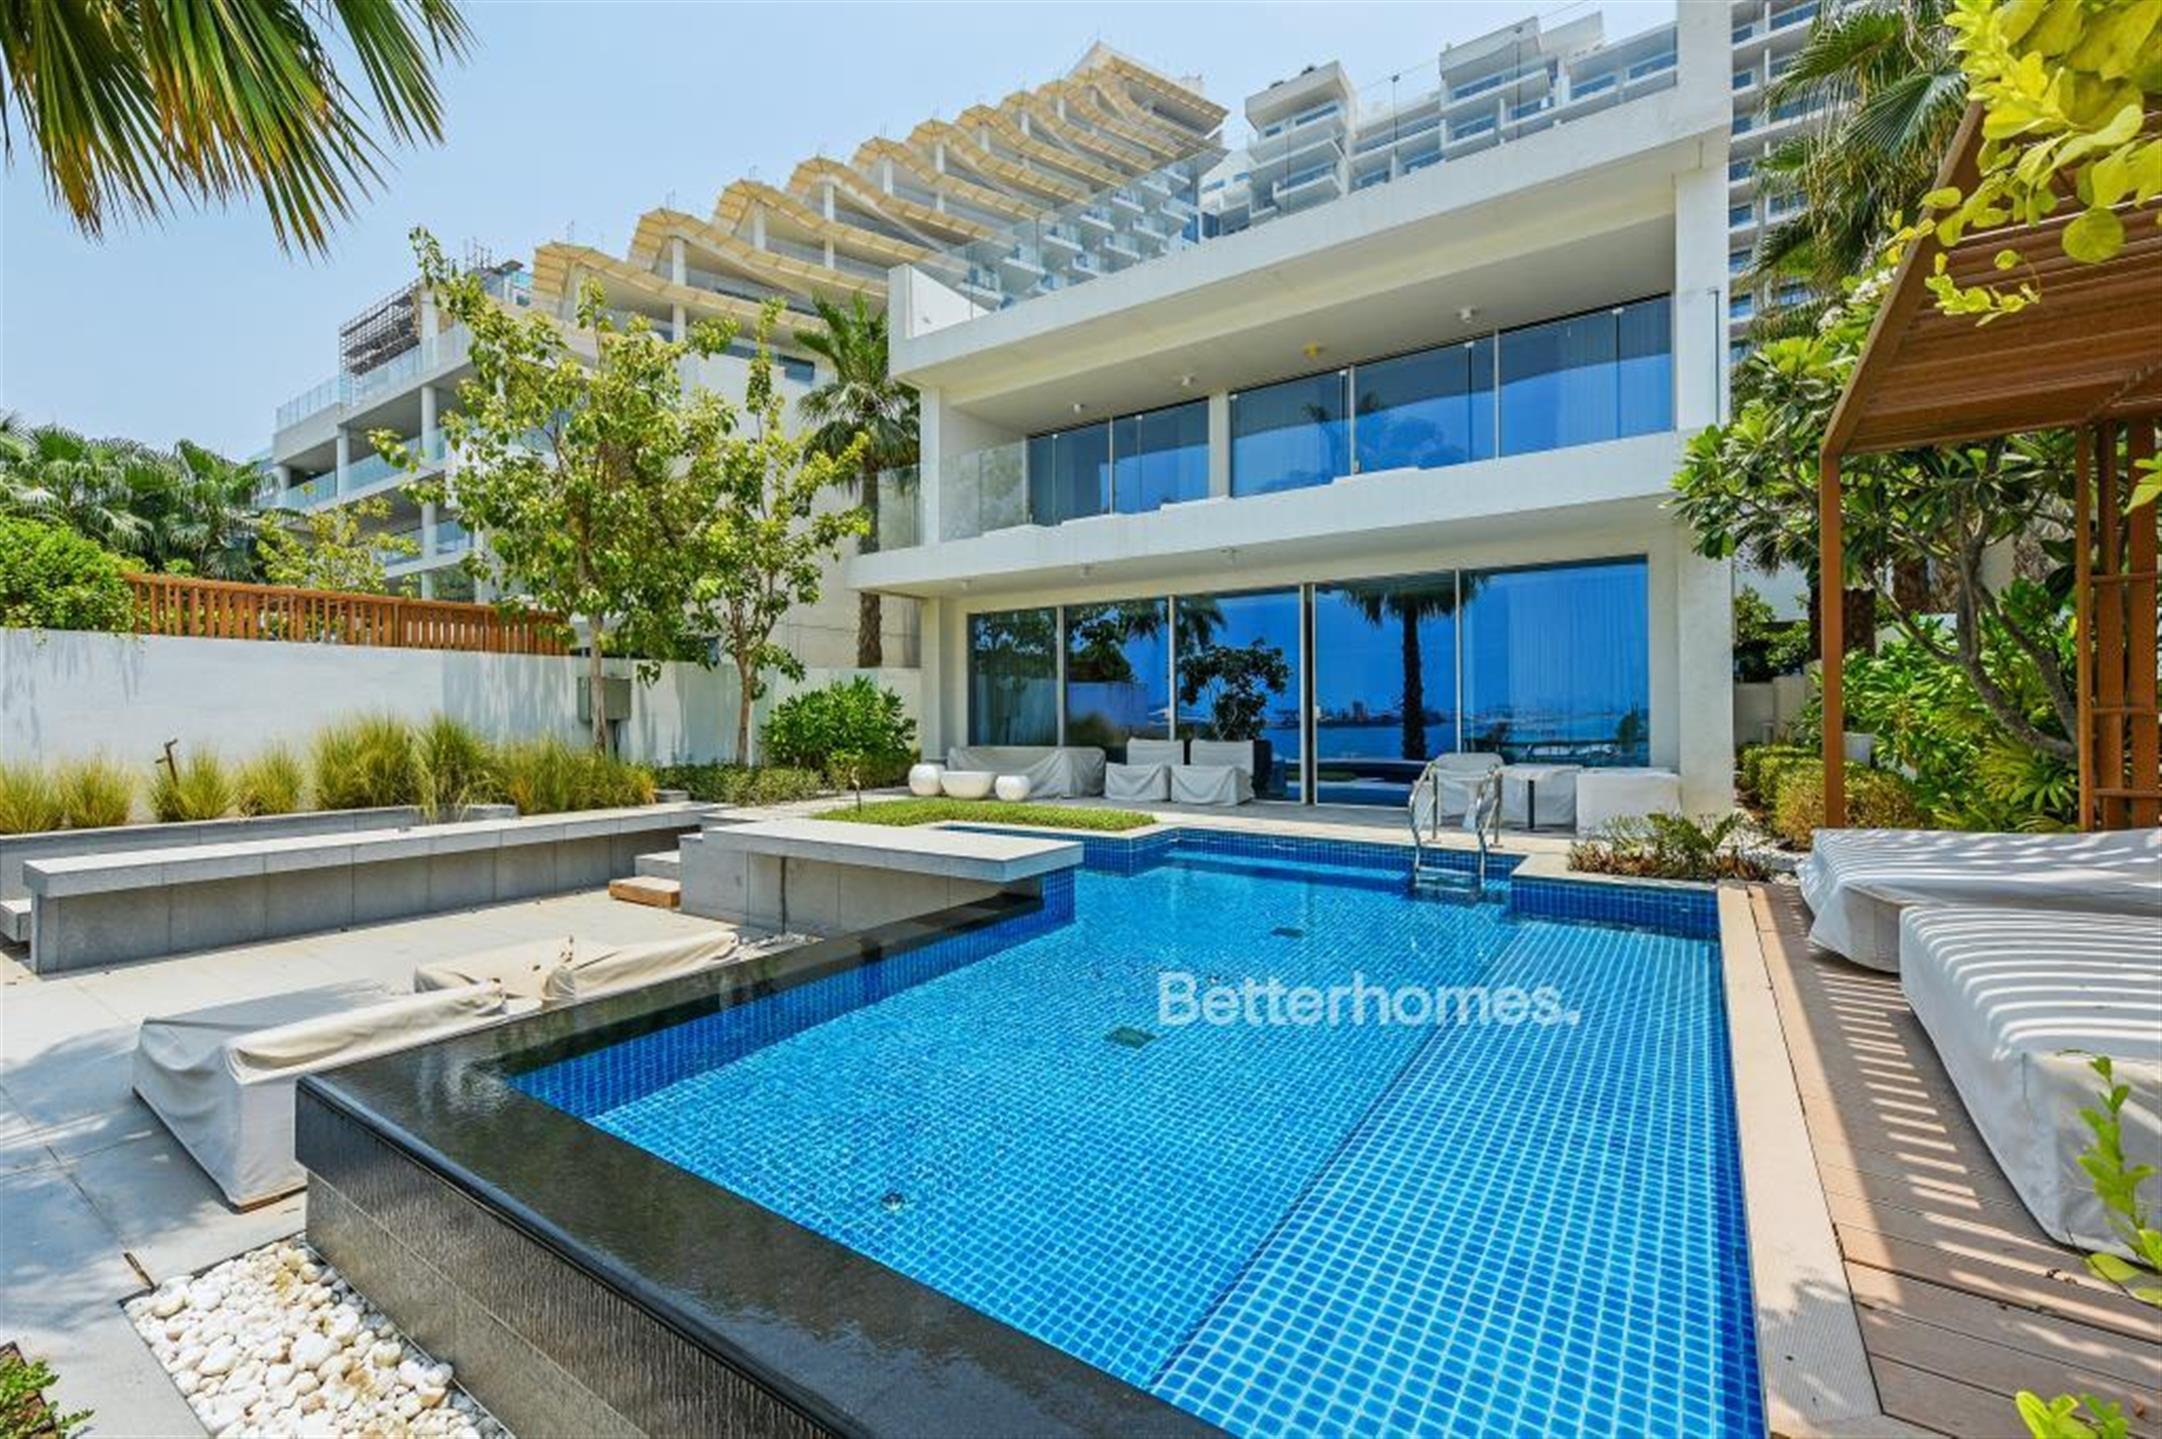 Main Photo of a 4 bedroom End of Terrace House for sale